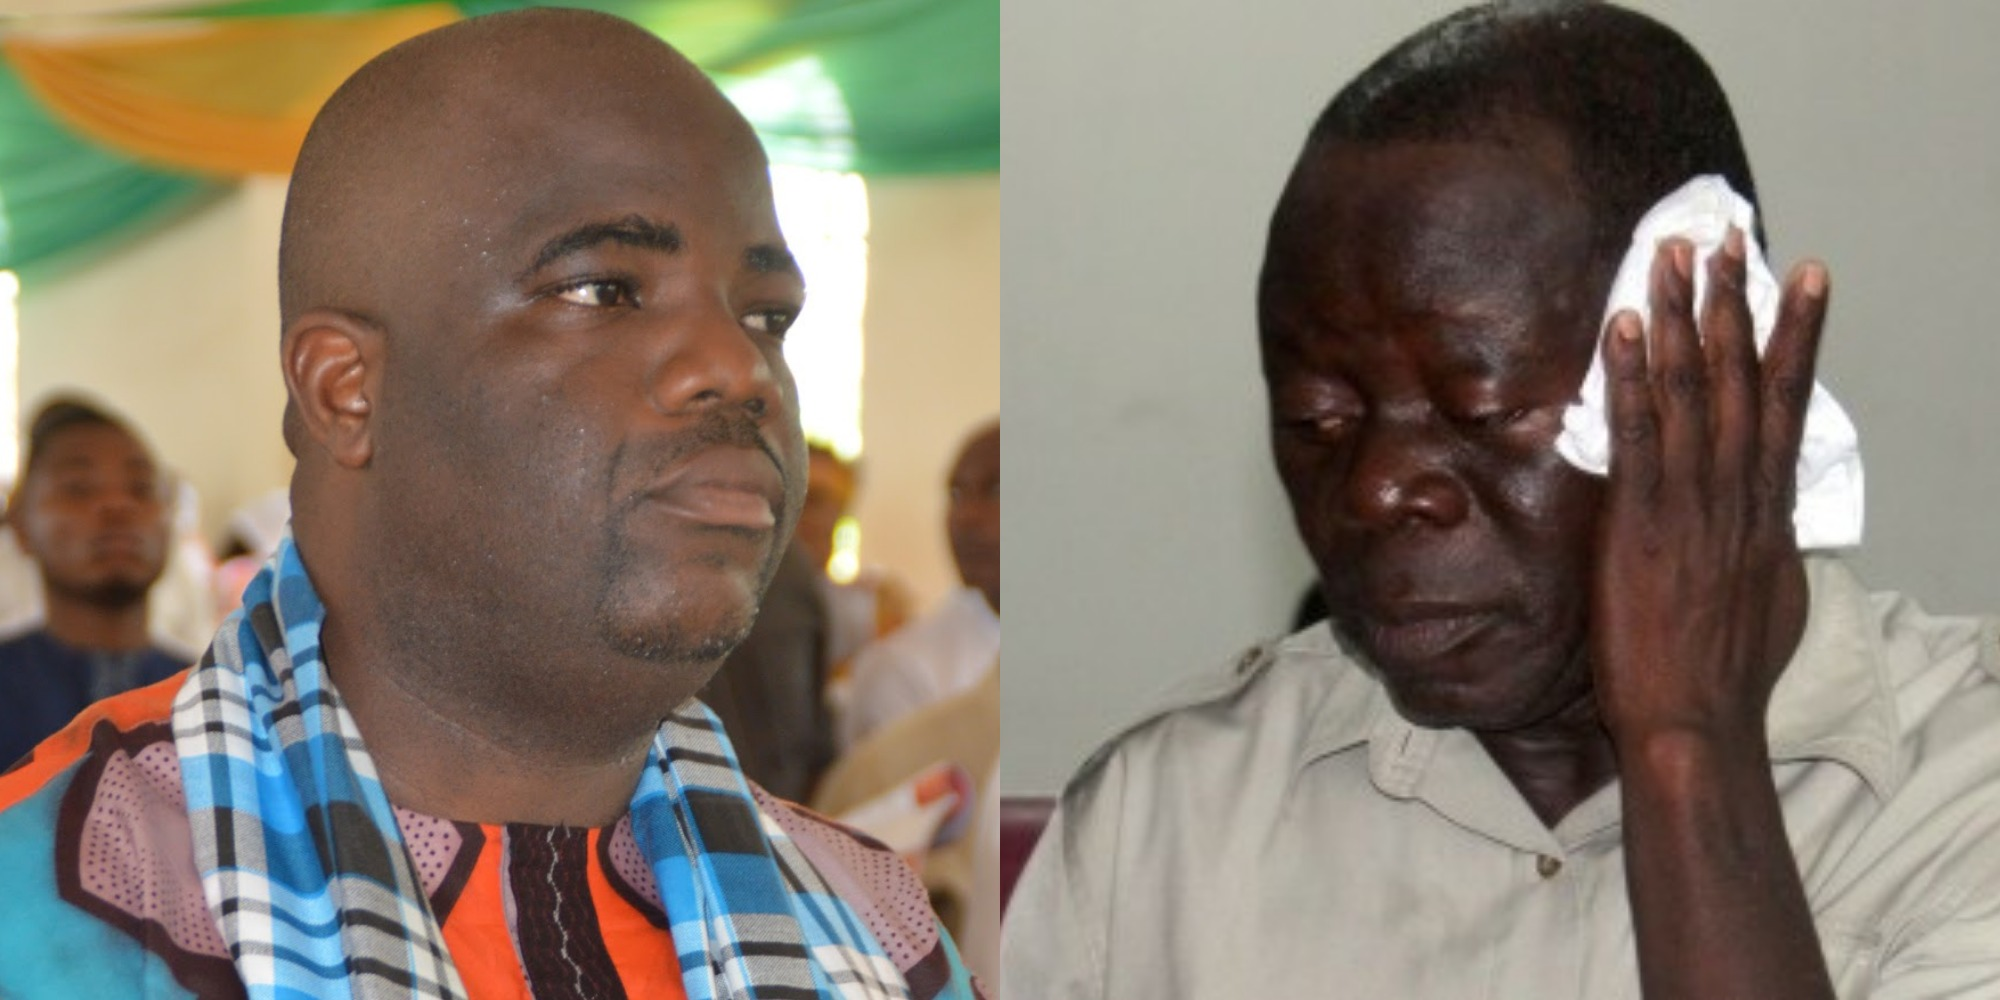 Daniel Nwafor (Left), Adams Oshiomole (Right)